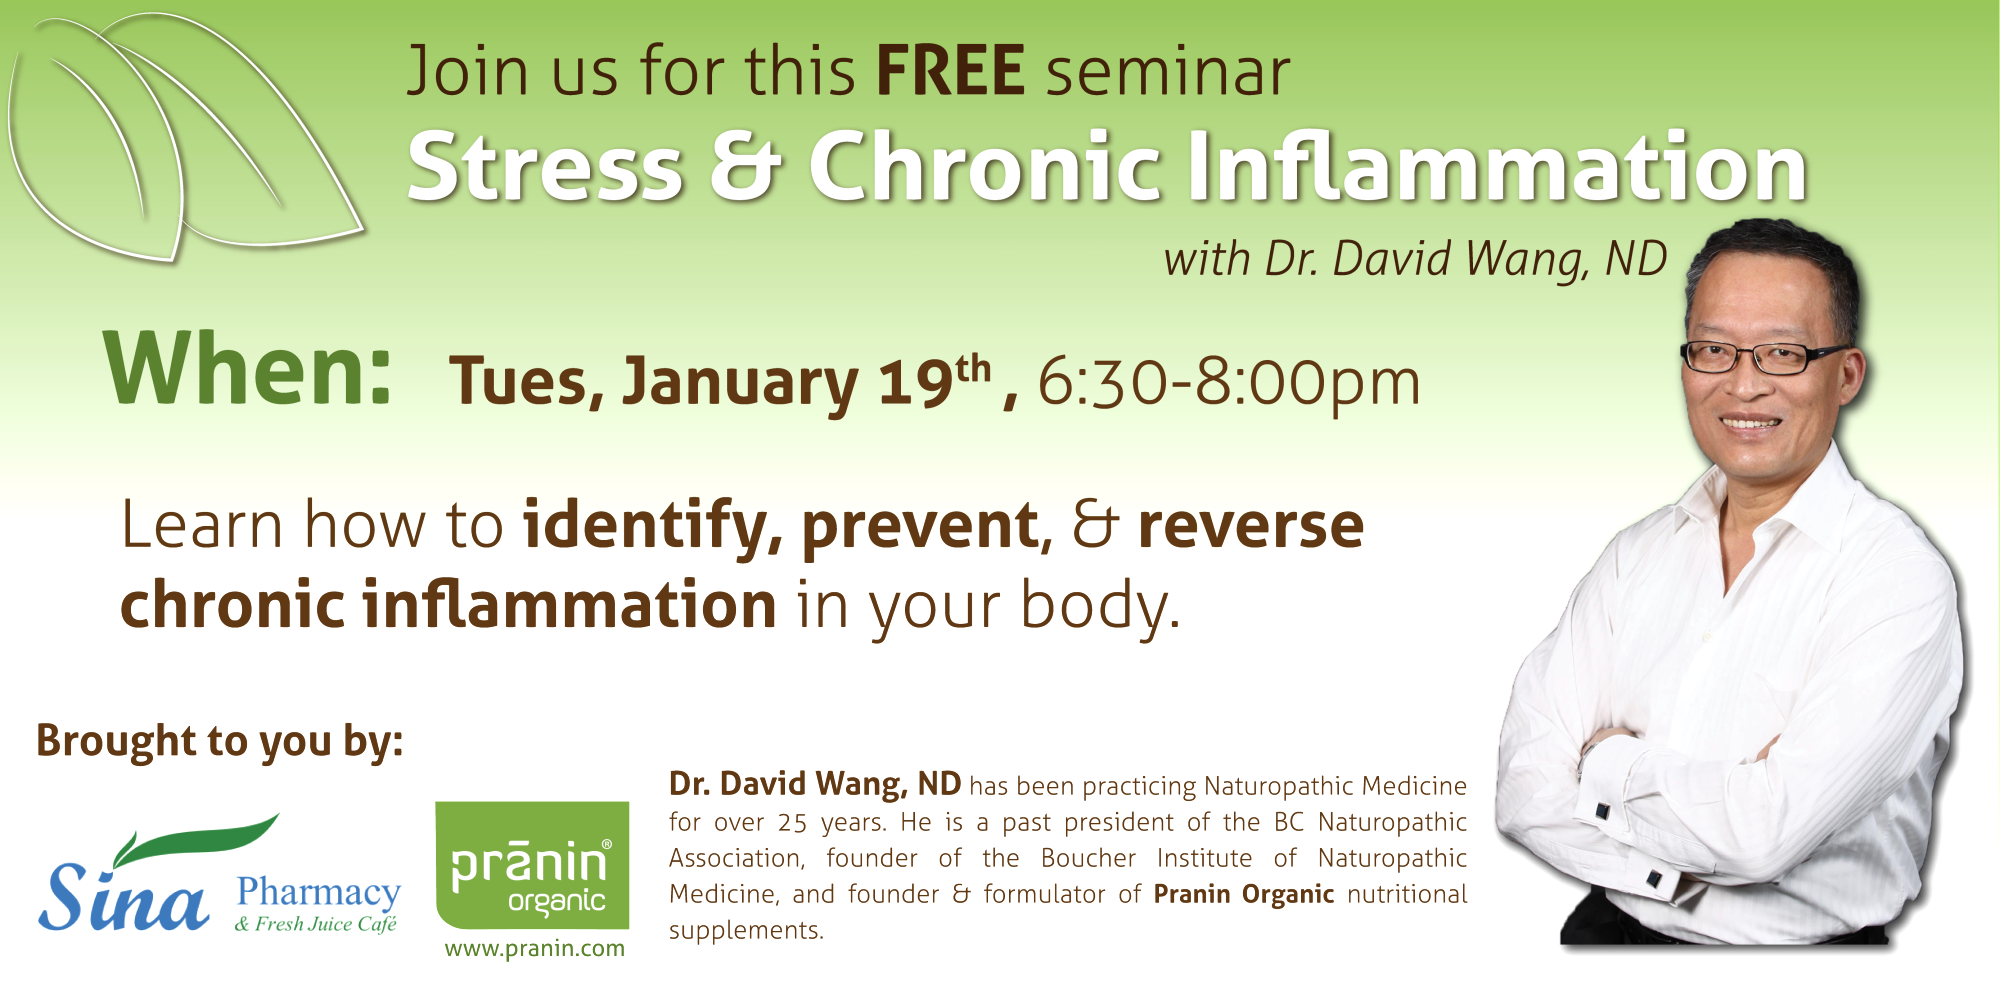 Sina Pharmacy - Stress & Chronic Inflammation Event